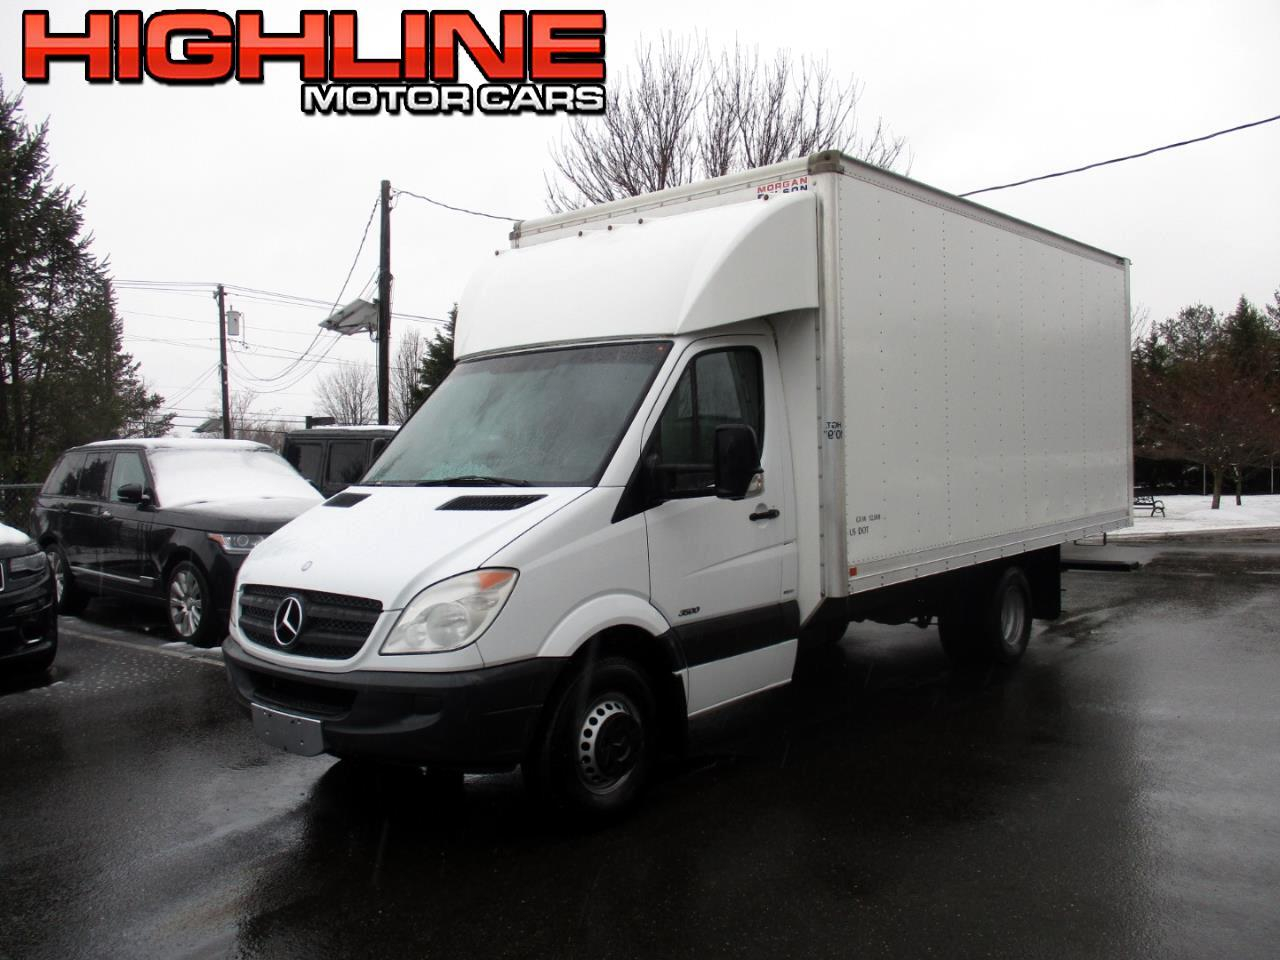 2012 Mercedes-Benz Sprinter Chassis-Cabs 2WD Reg Cab 144